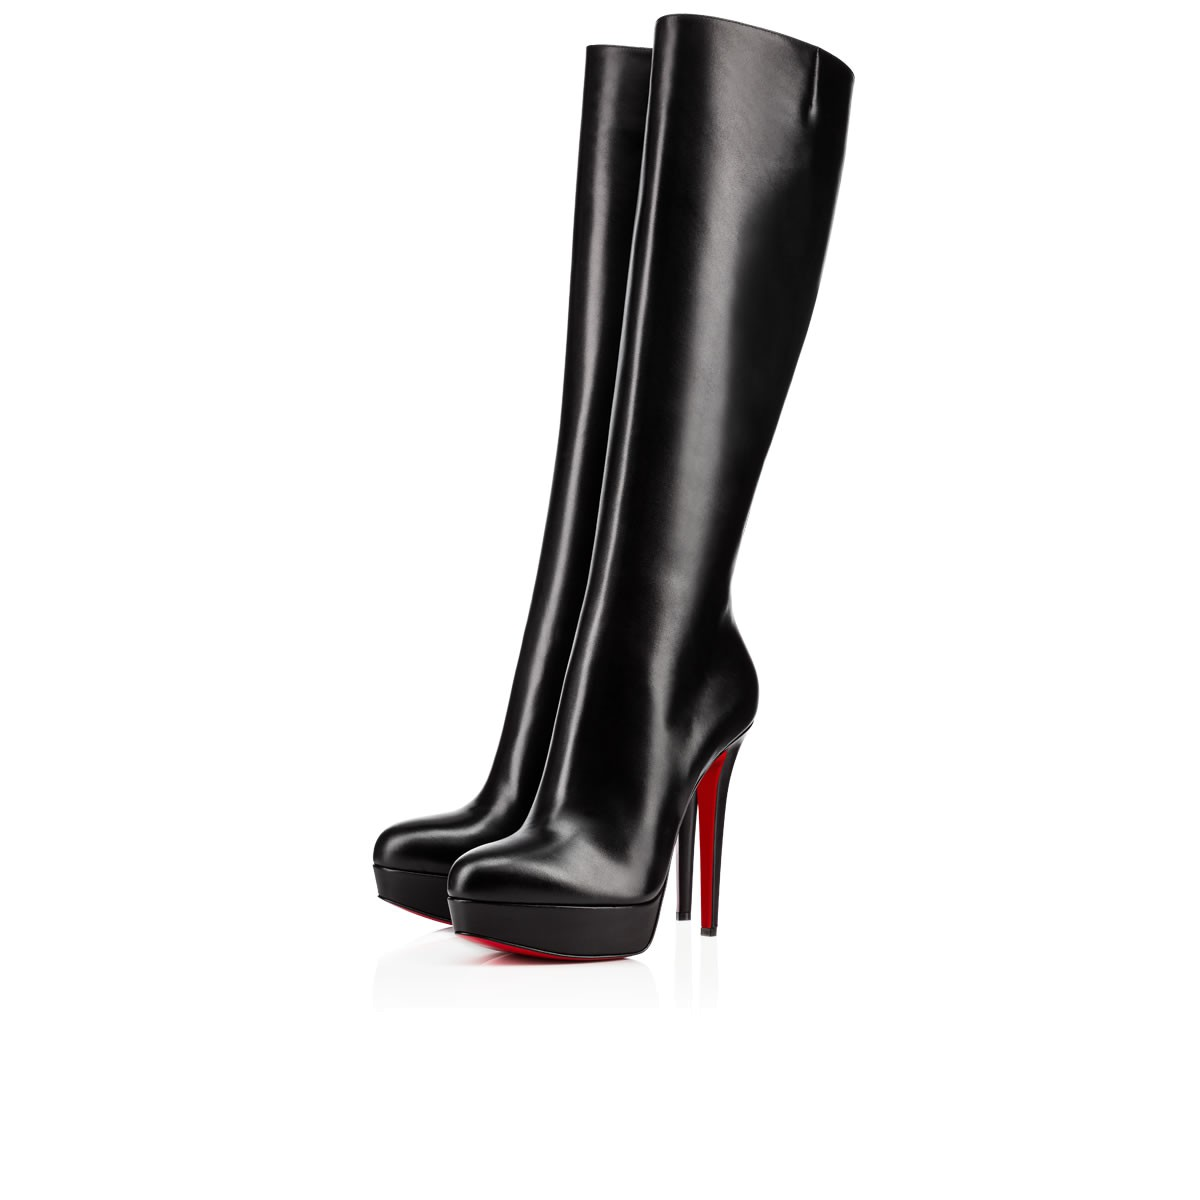 meilleure sélection 207cf 3f15a BIANCA BOTTA 140 Black Leather - Women Shoes - Christian Louboutin